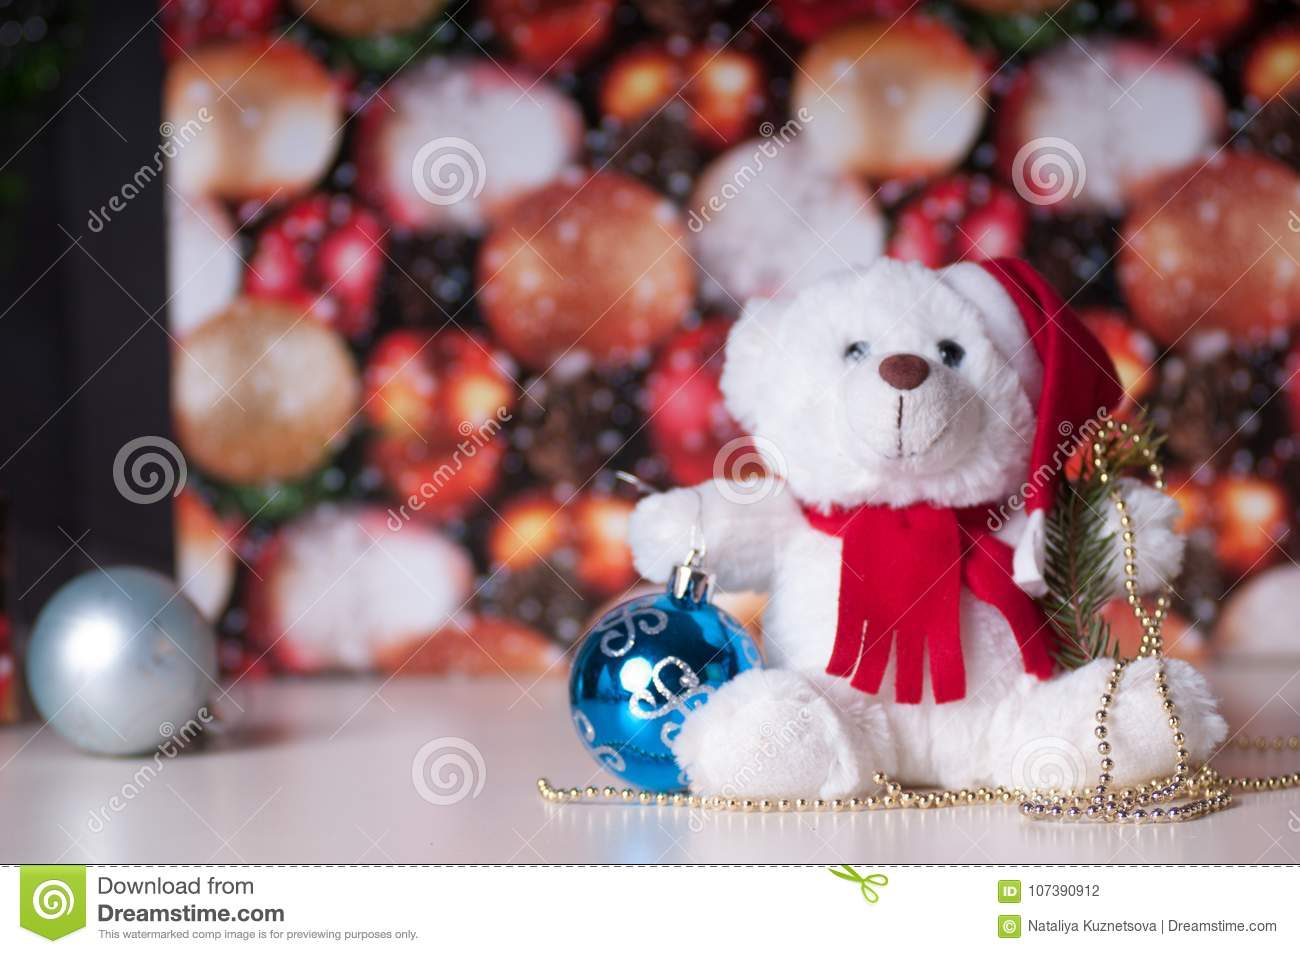 White teddy bear with presents